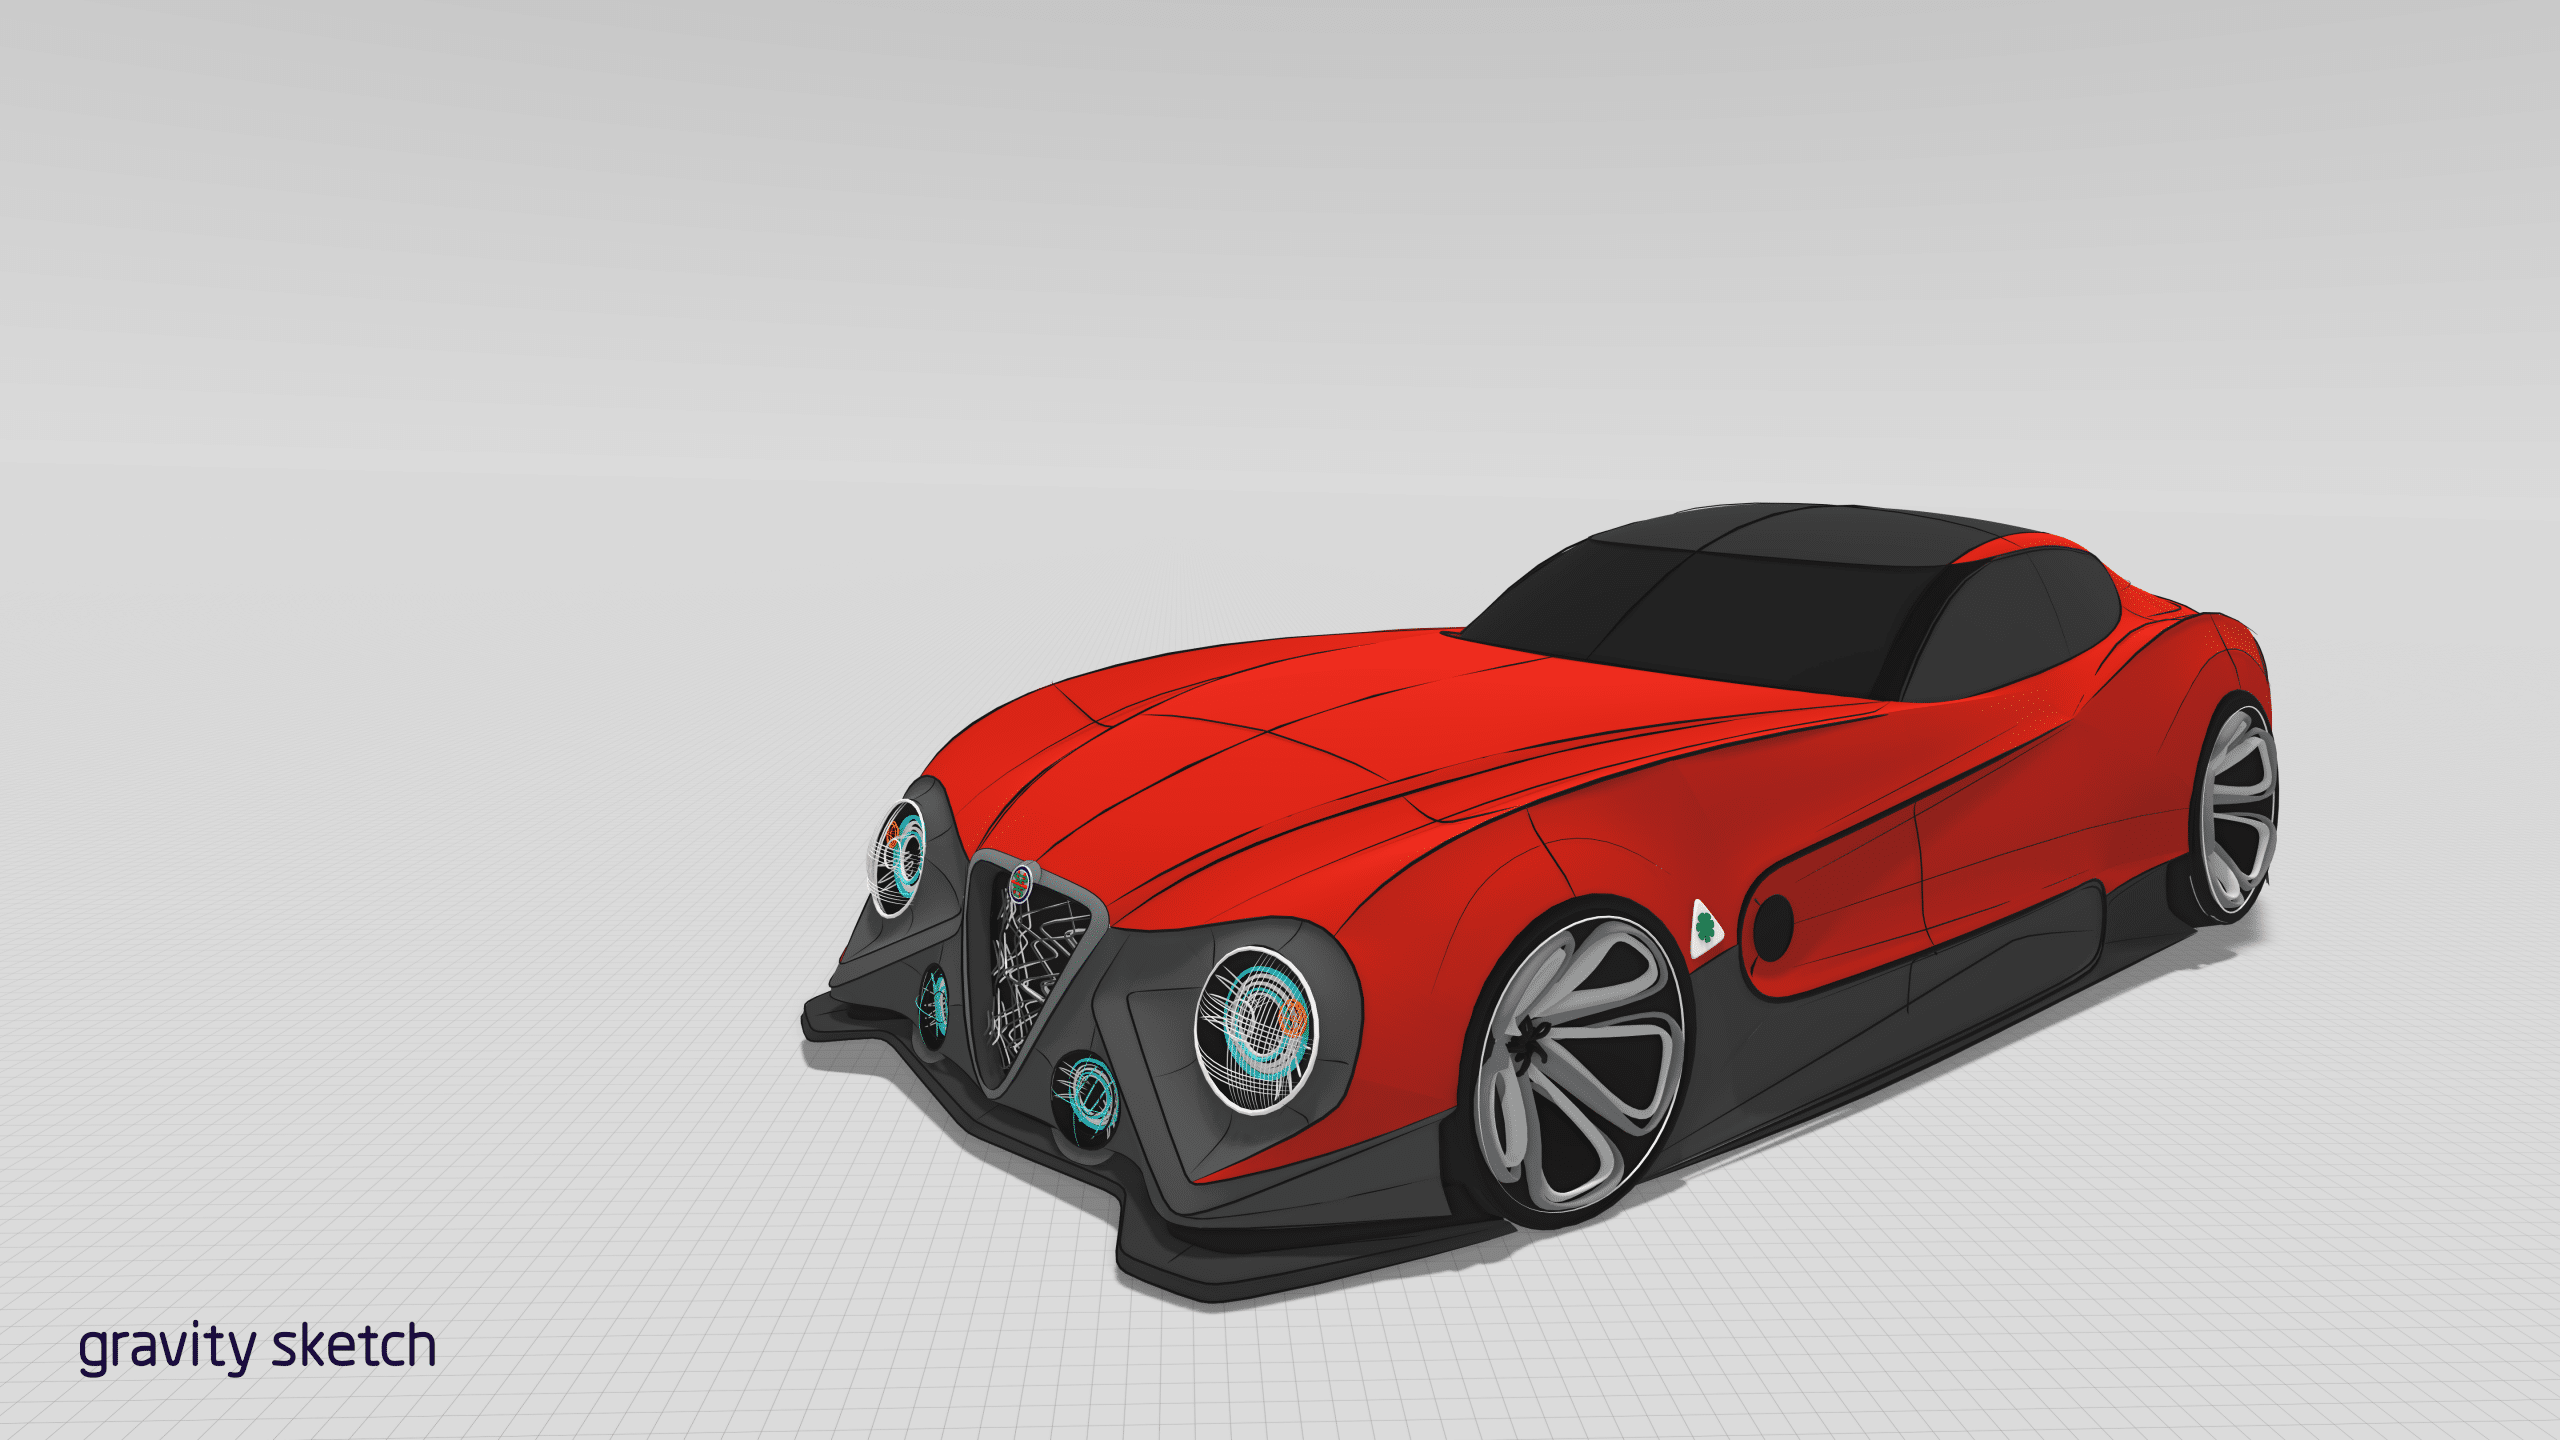 Red car designed by James Robbins in Gravity Sketch